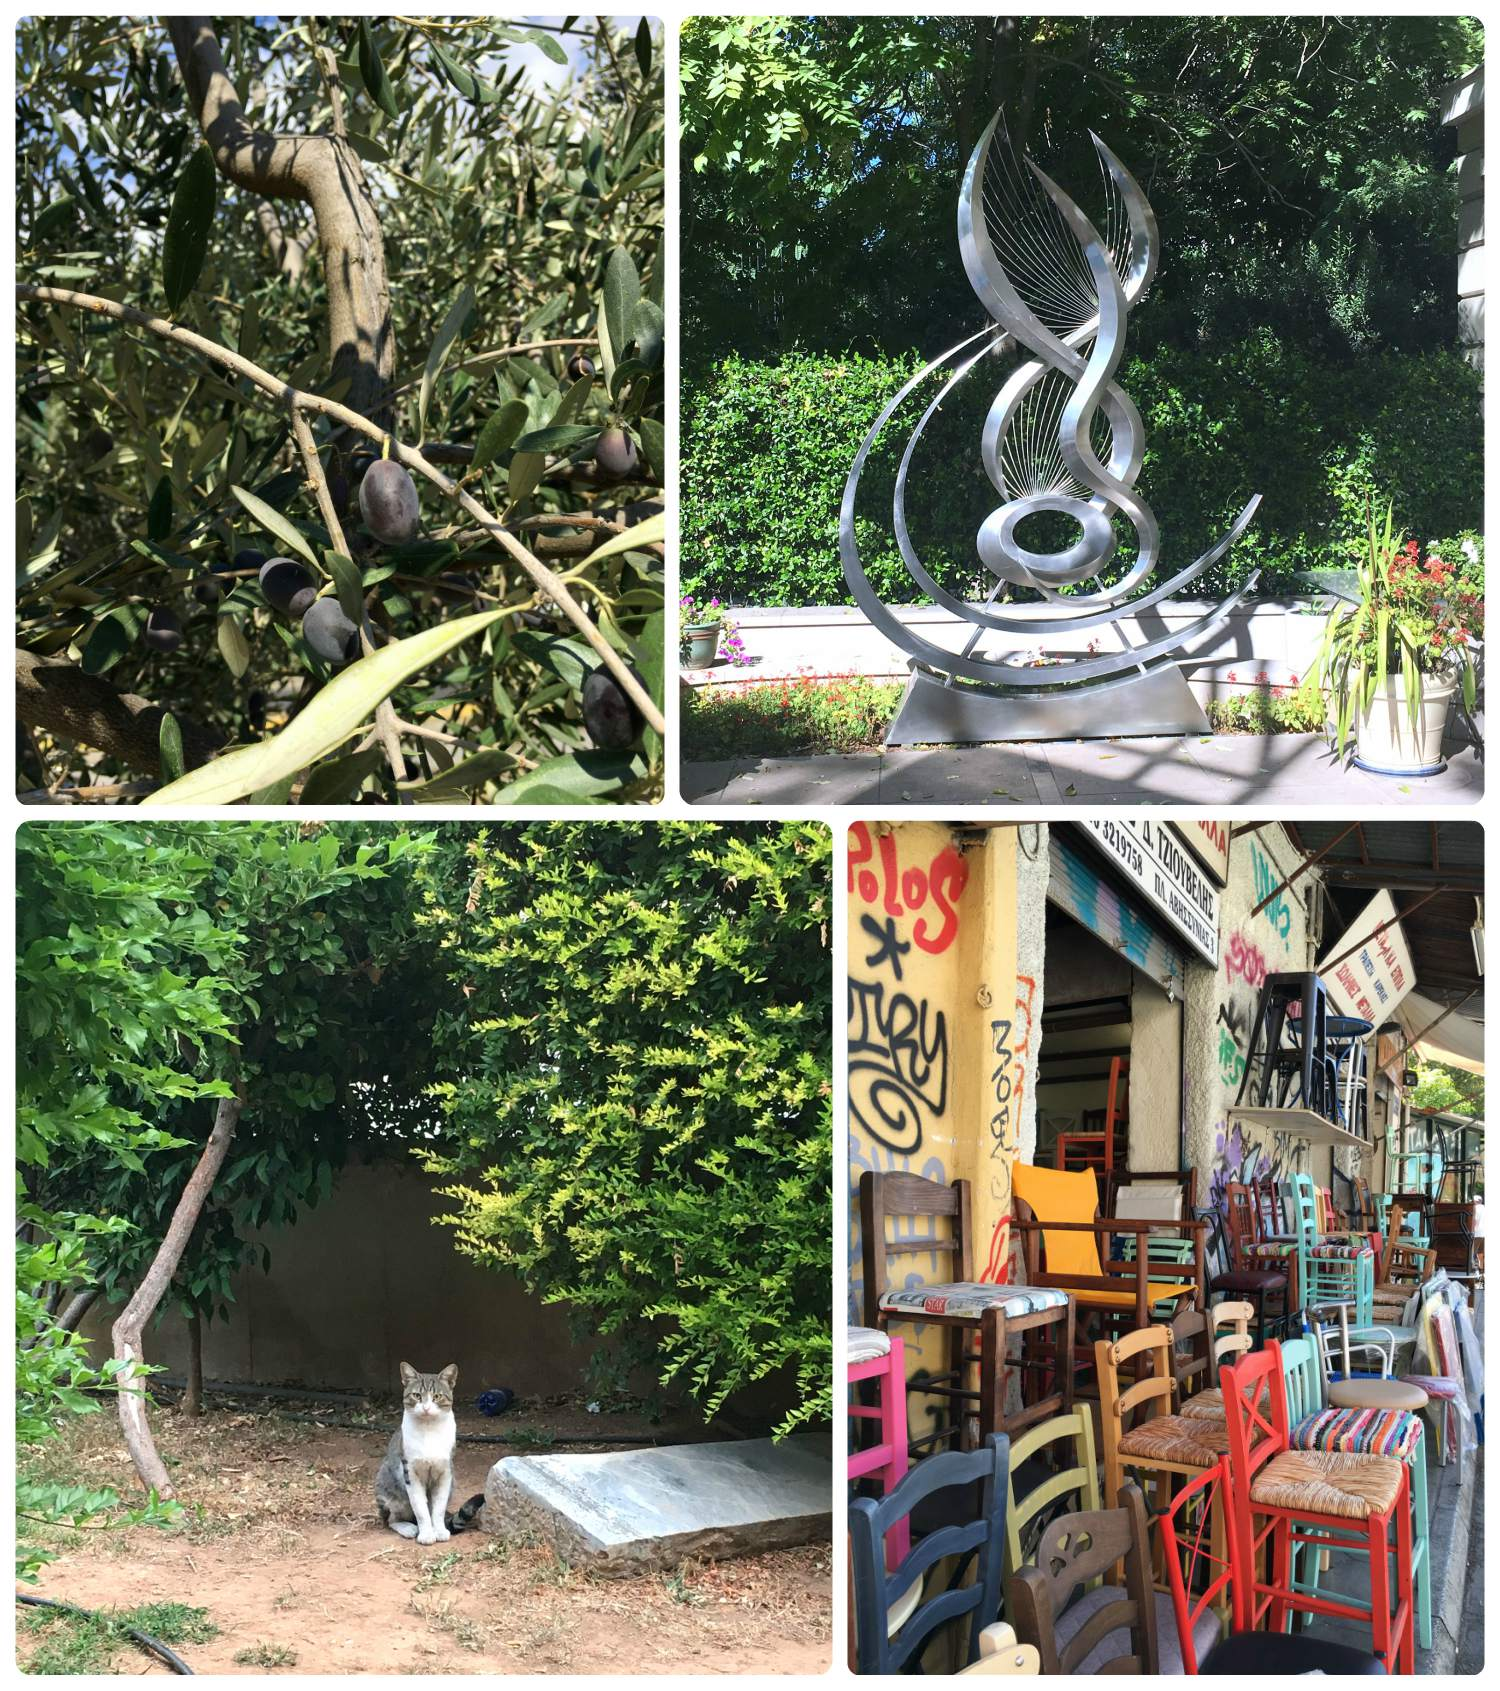 Clockwise (from the top left): It was no surprise that we spotted olive trees in Athens, a piece of at work in front of the B&M Theocharakis Foundation for the Fine Arts and Music, a colorful shop that caught our attention, there were cats all over Athens (it reminded us of  Istanbul )!